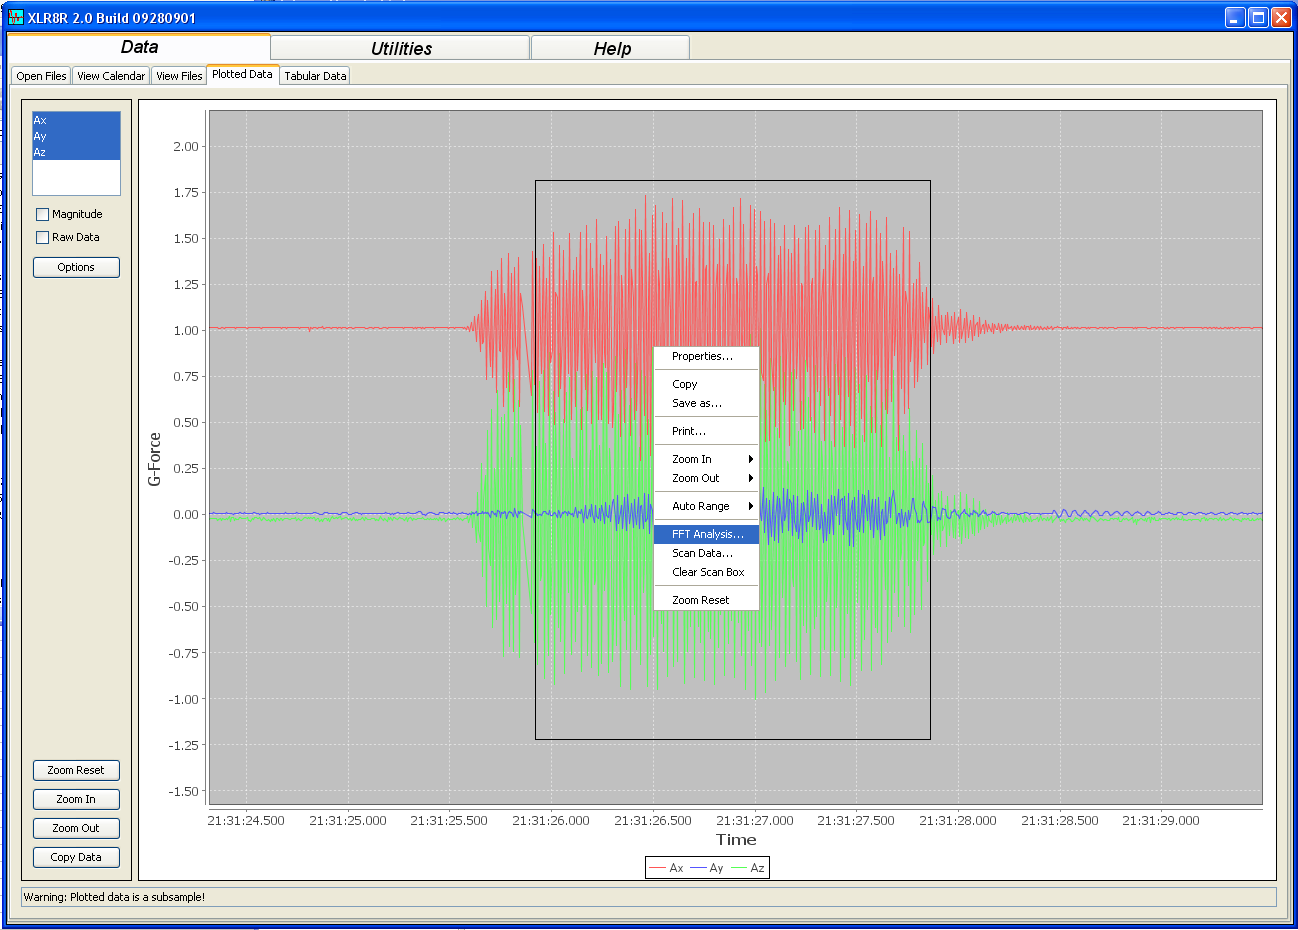 Test 1 Accelerometer Vibration Data